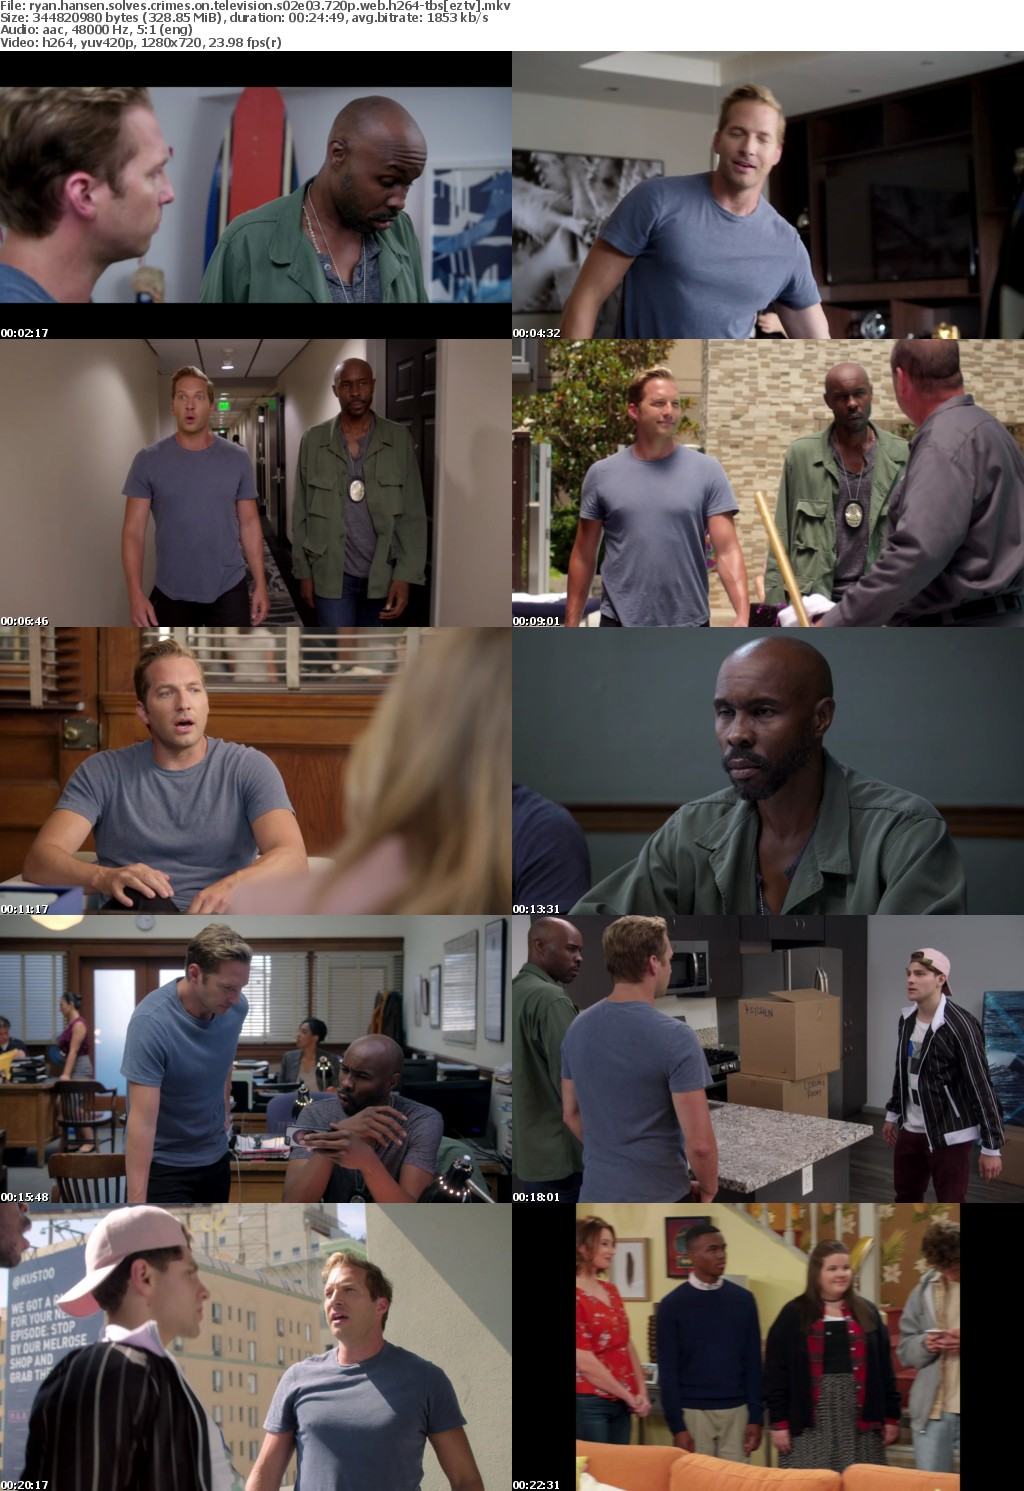 Ryan Hansen Solves Crimes on Television S02E03 720p WEB h264-TBS